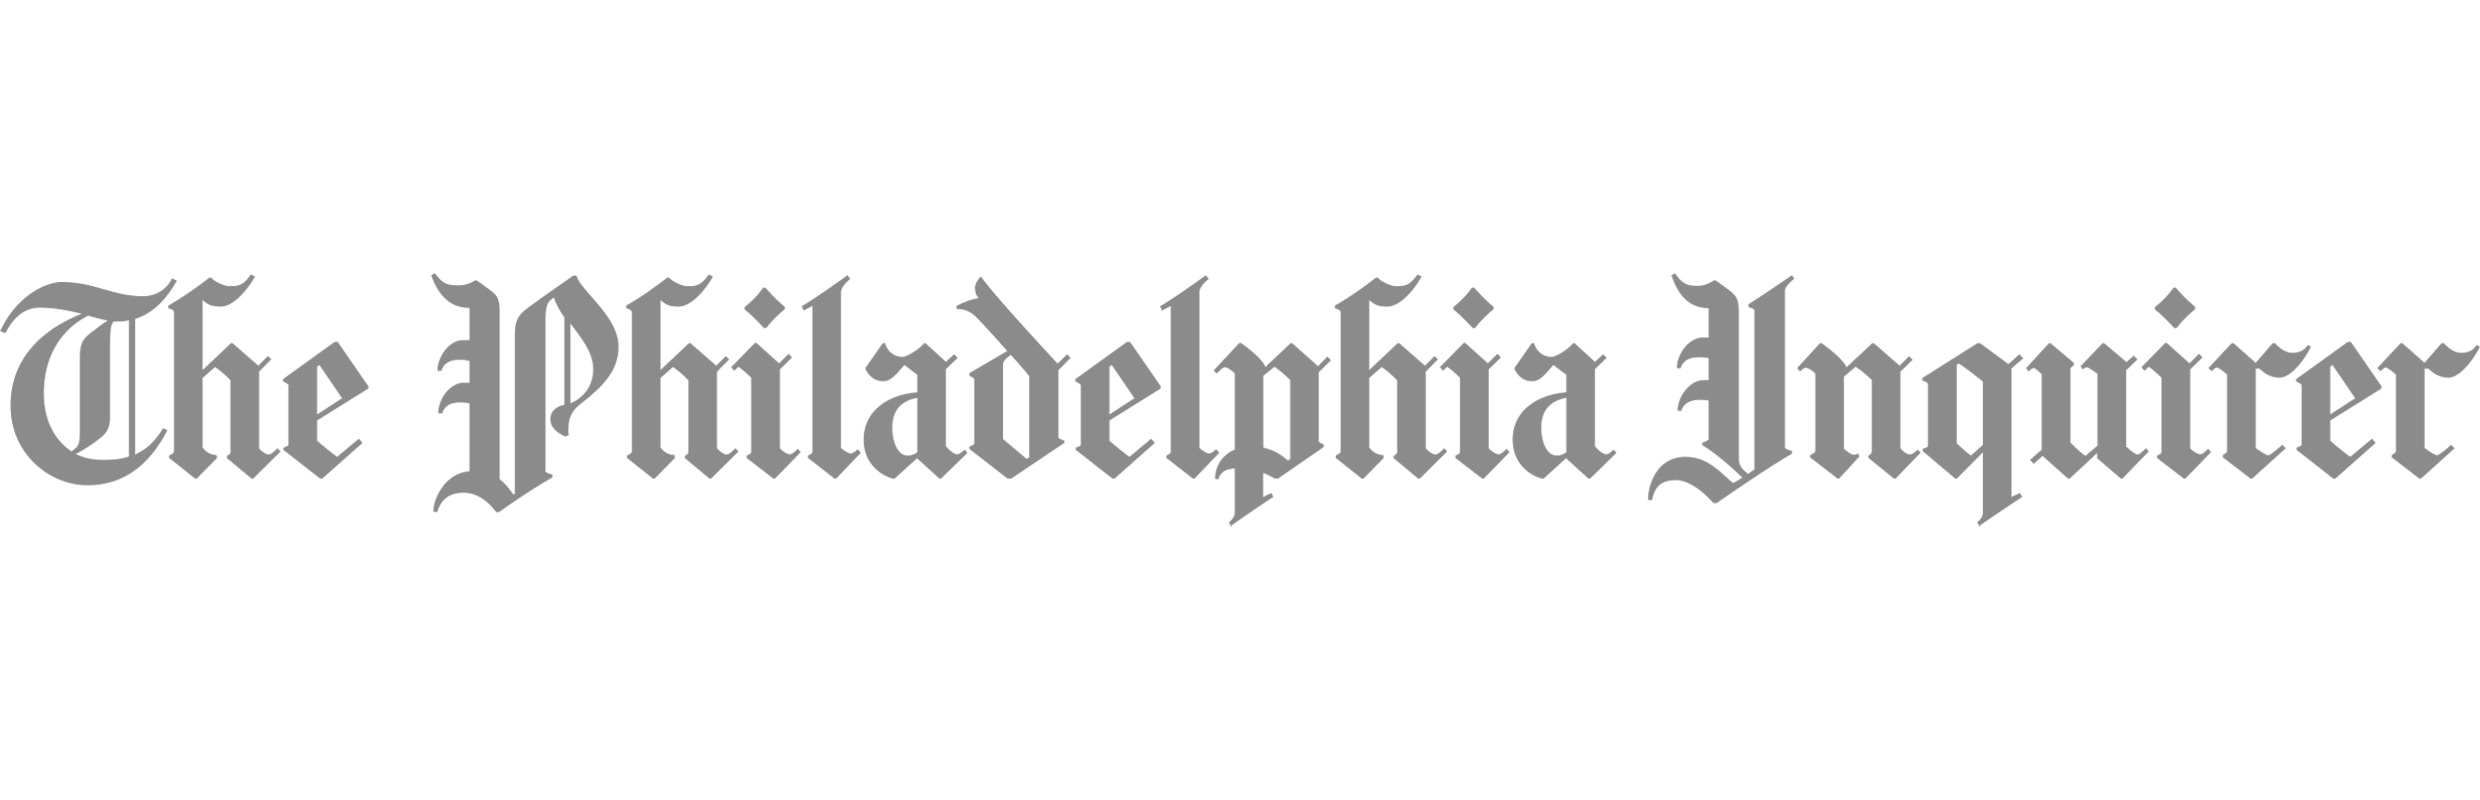 The philly inq